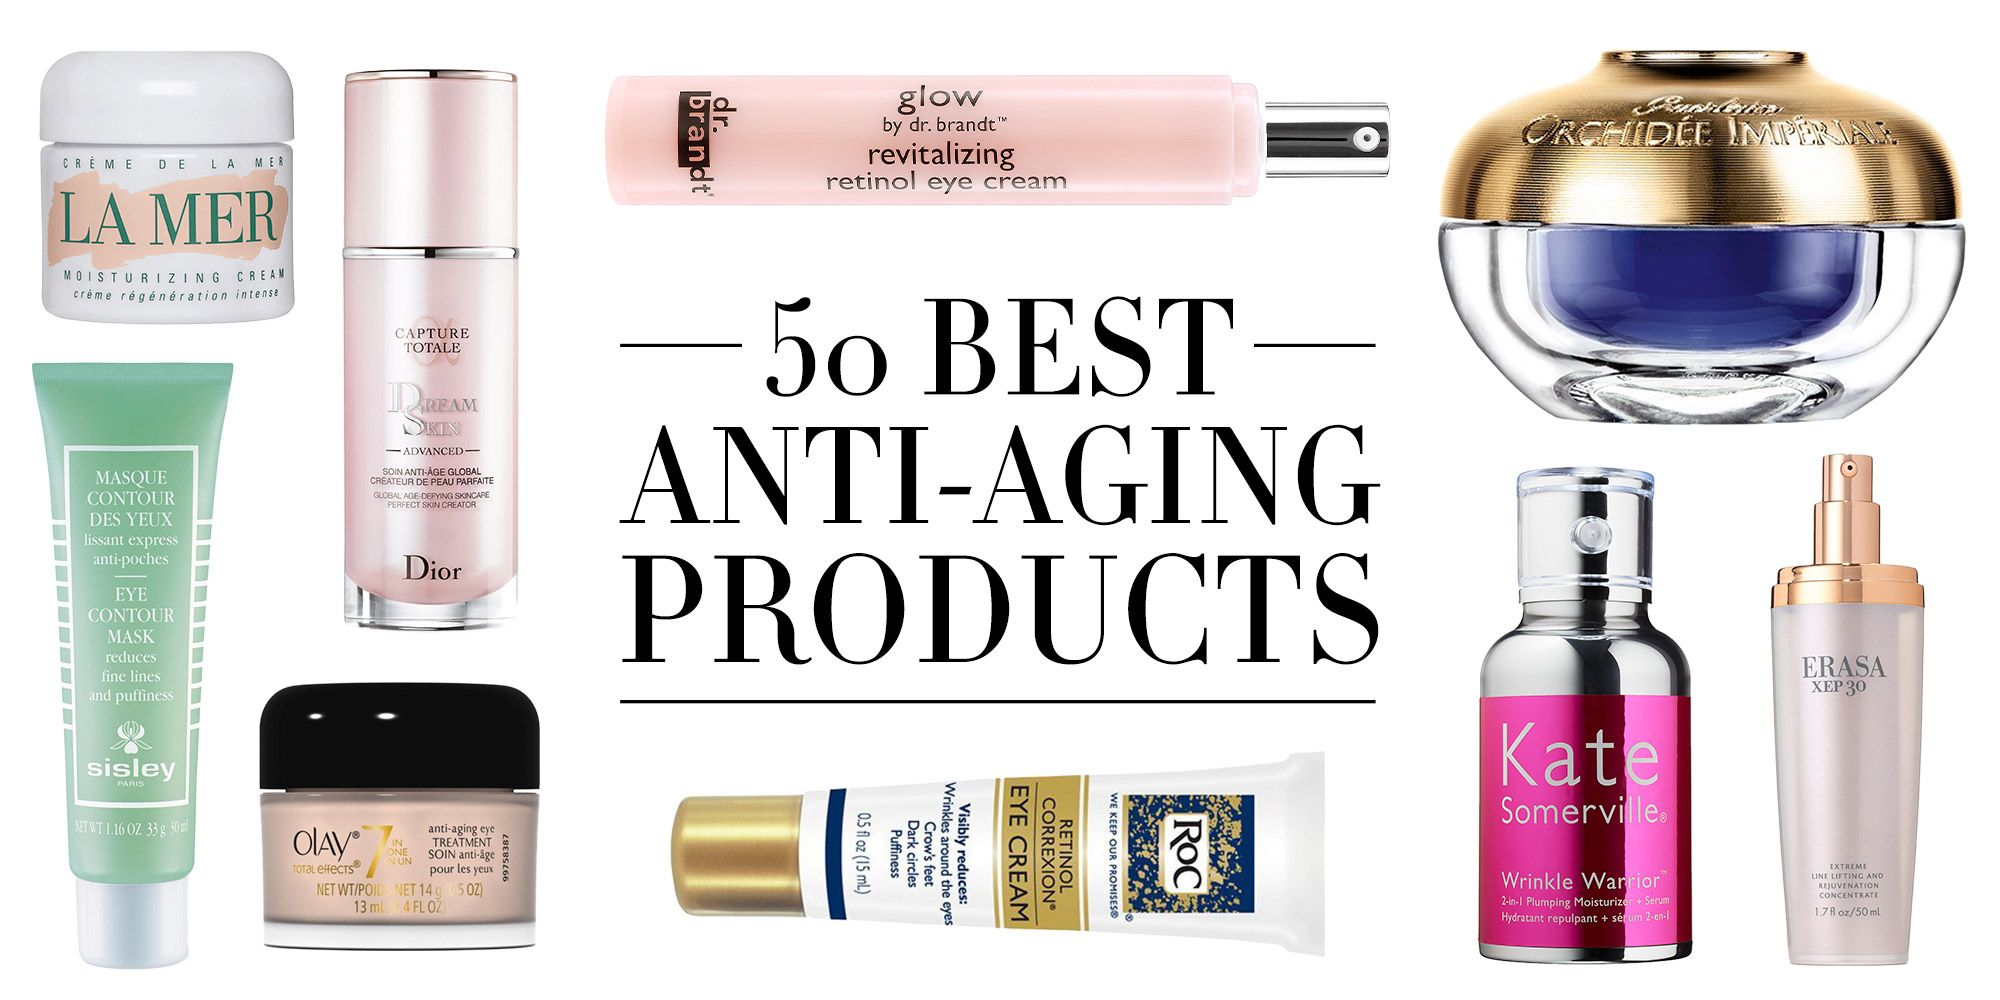 how to buy meghan markle anti aging essence or argan